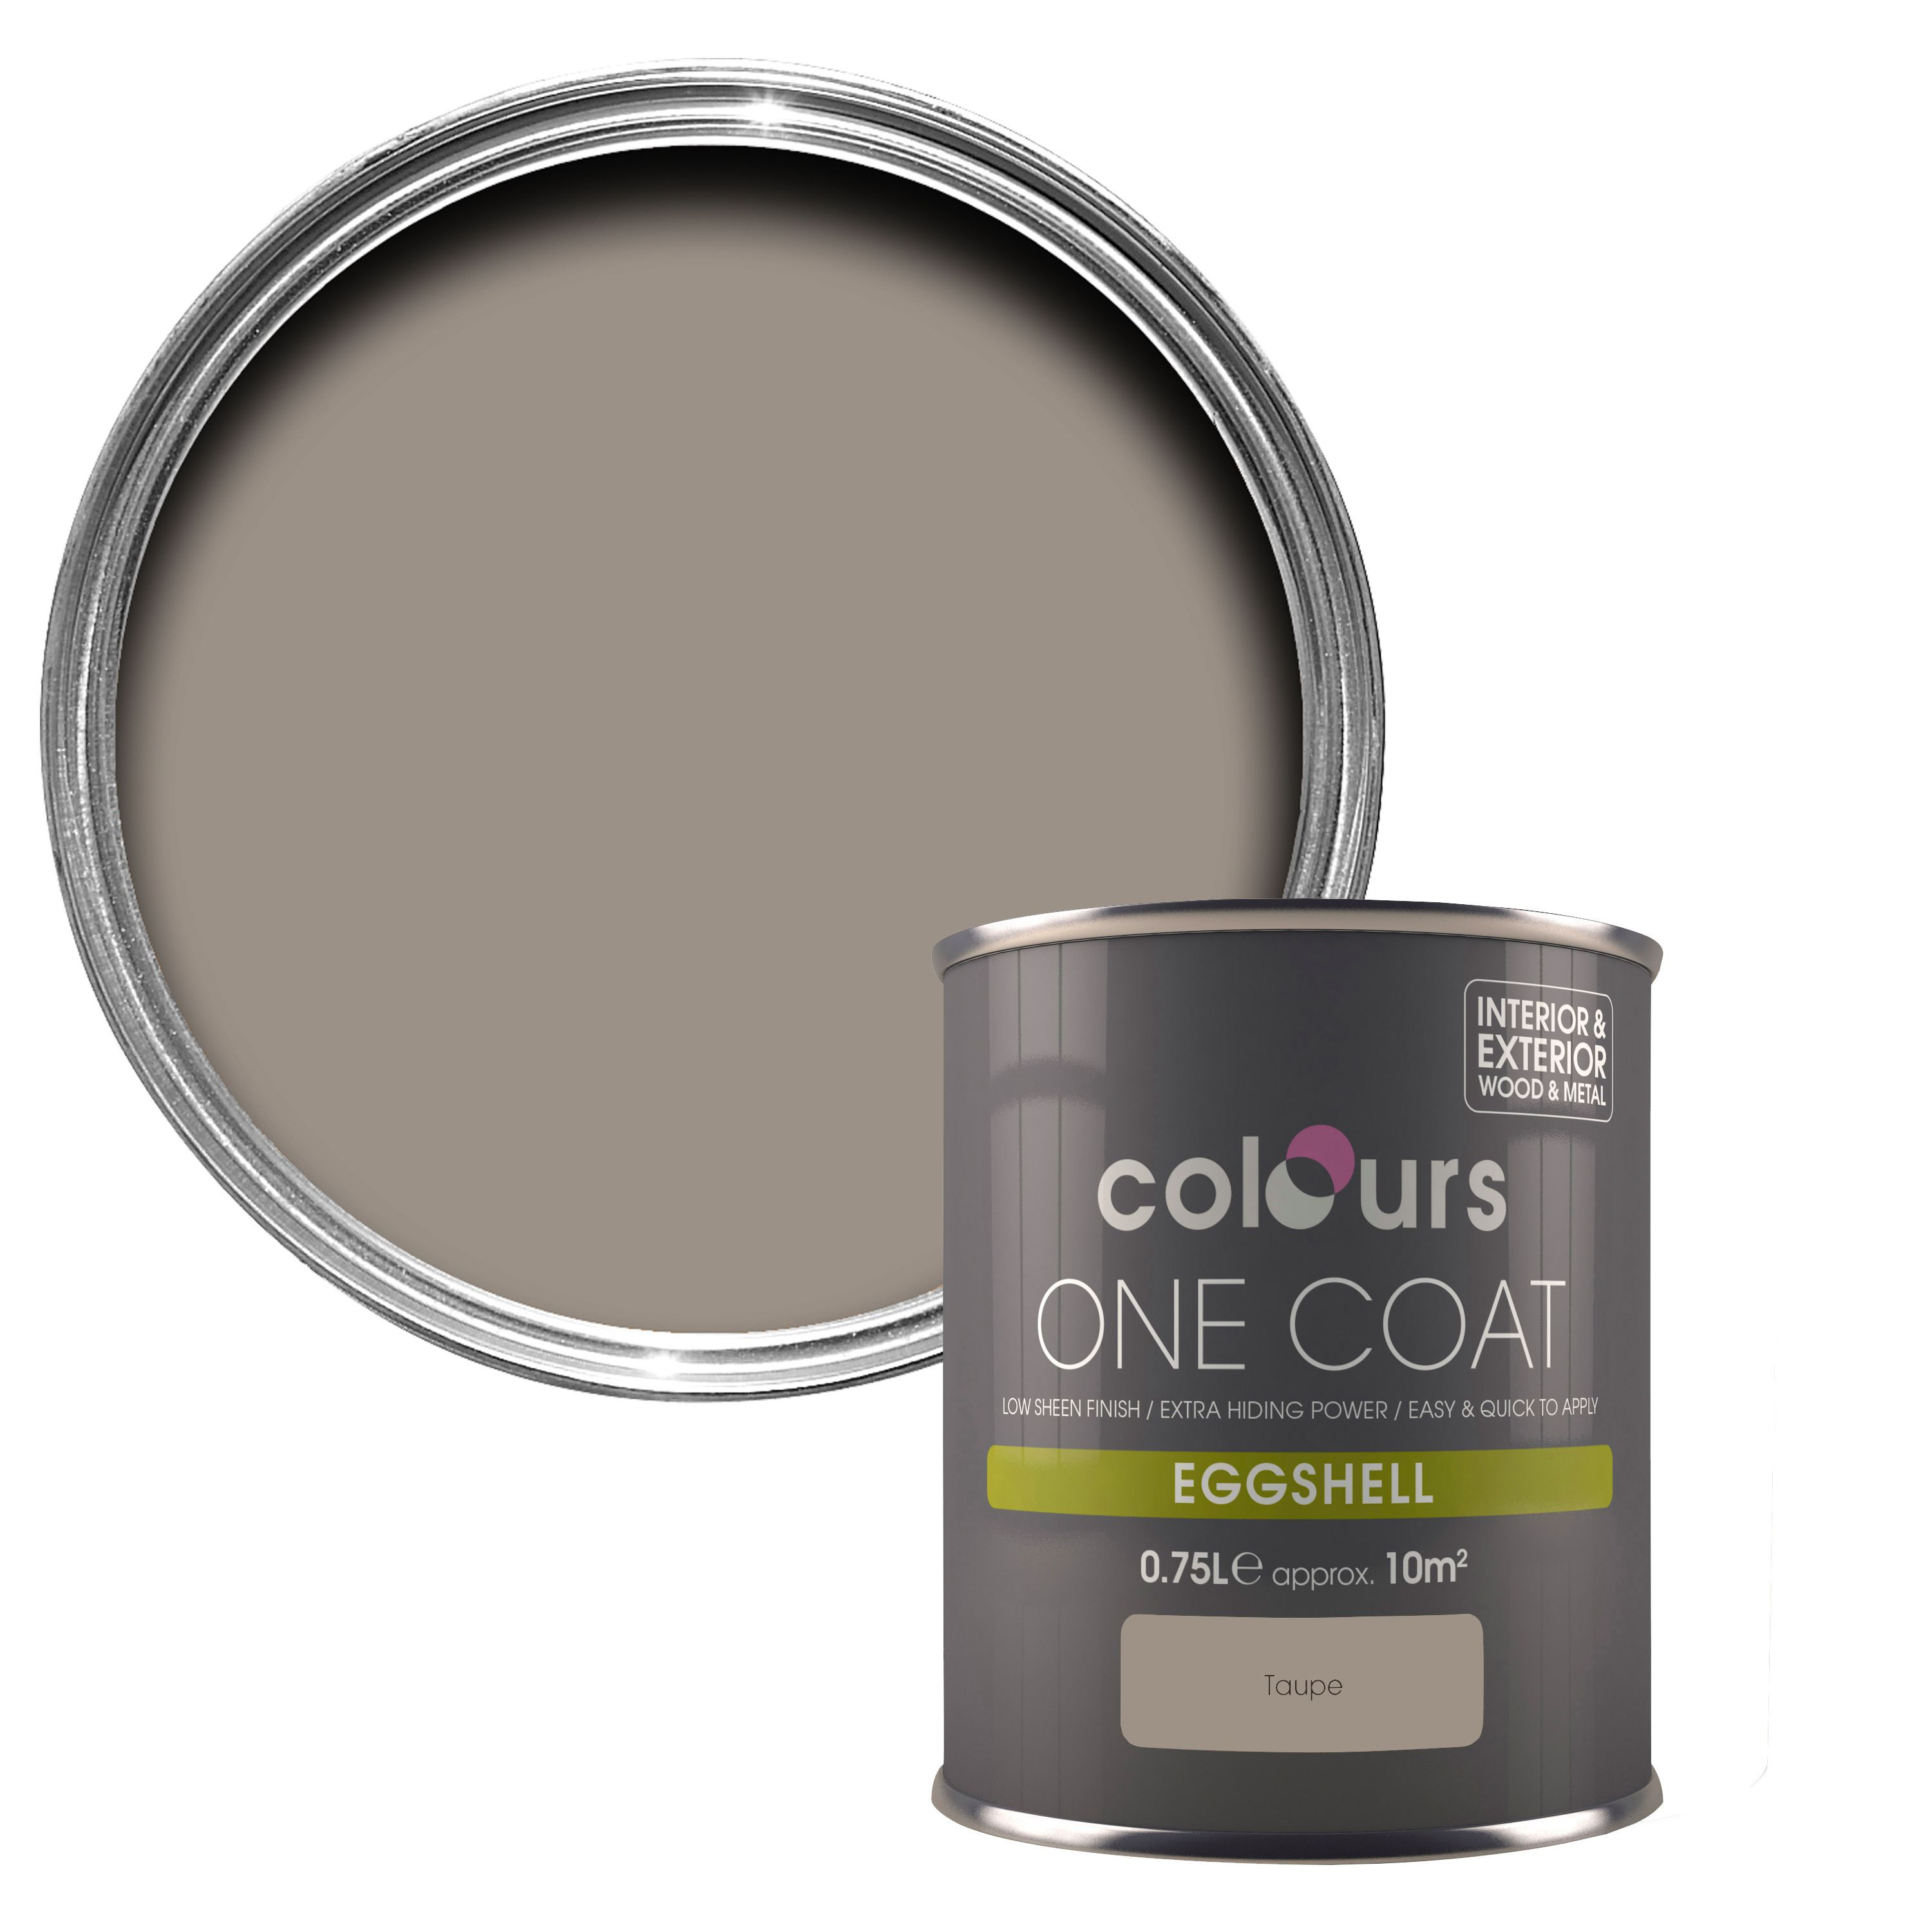 Colours One Coat Taupe Eggshell Wood Metal Paint 750 Ml Departments Diy At B Q